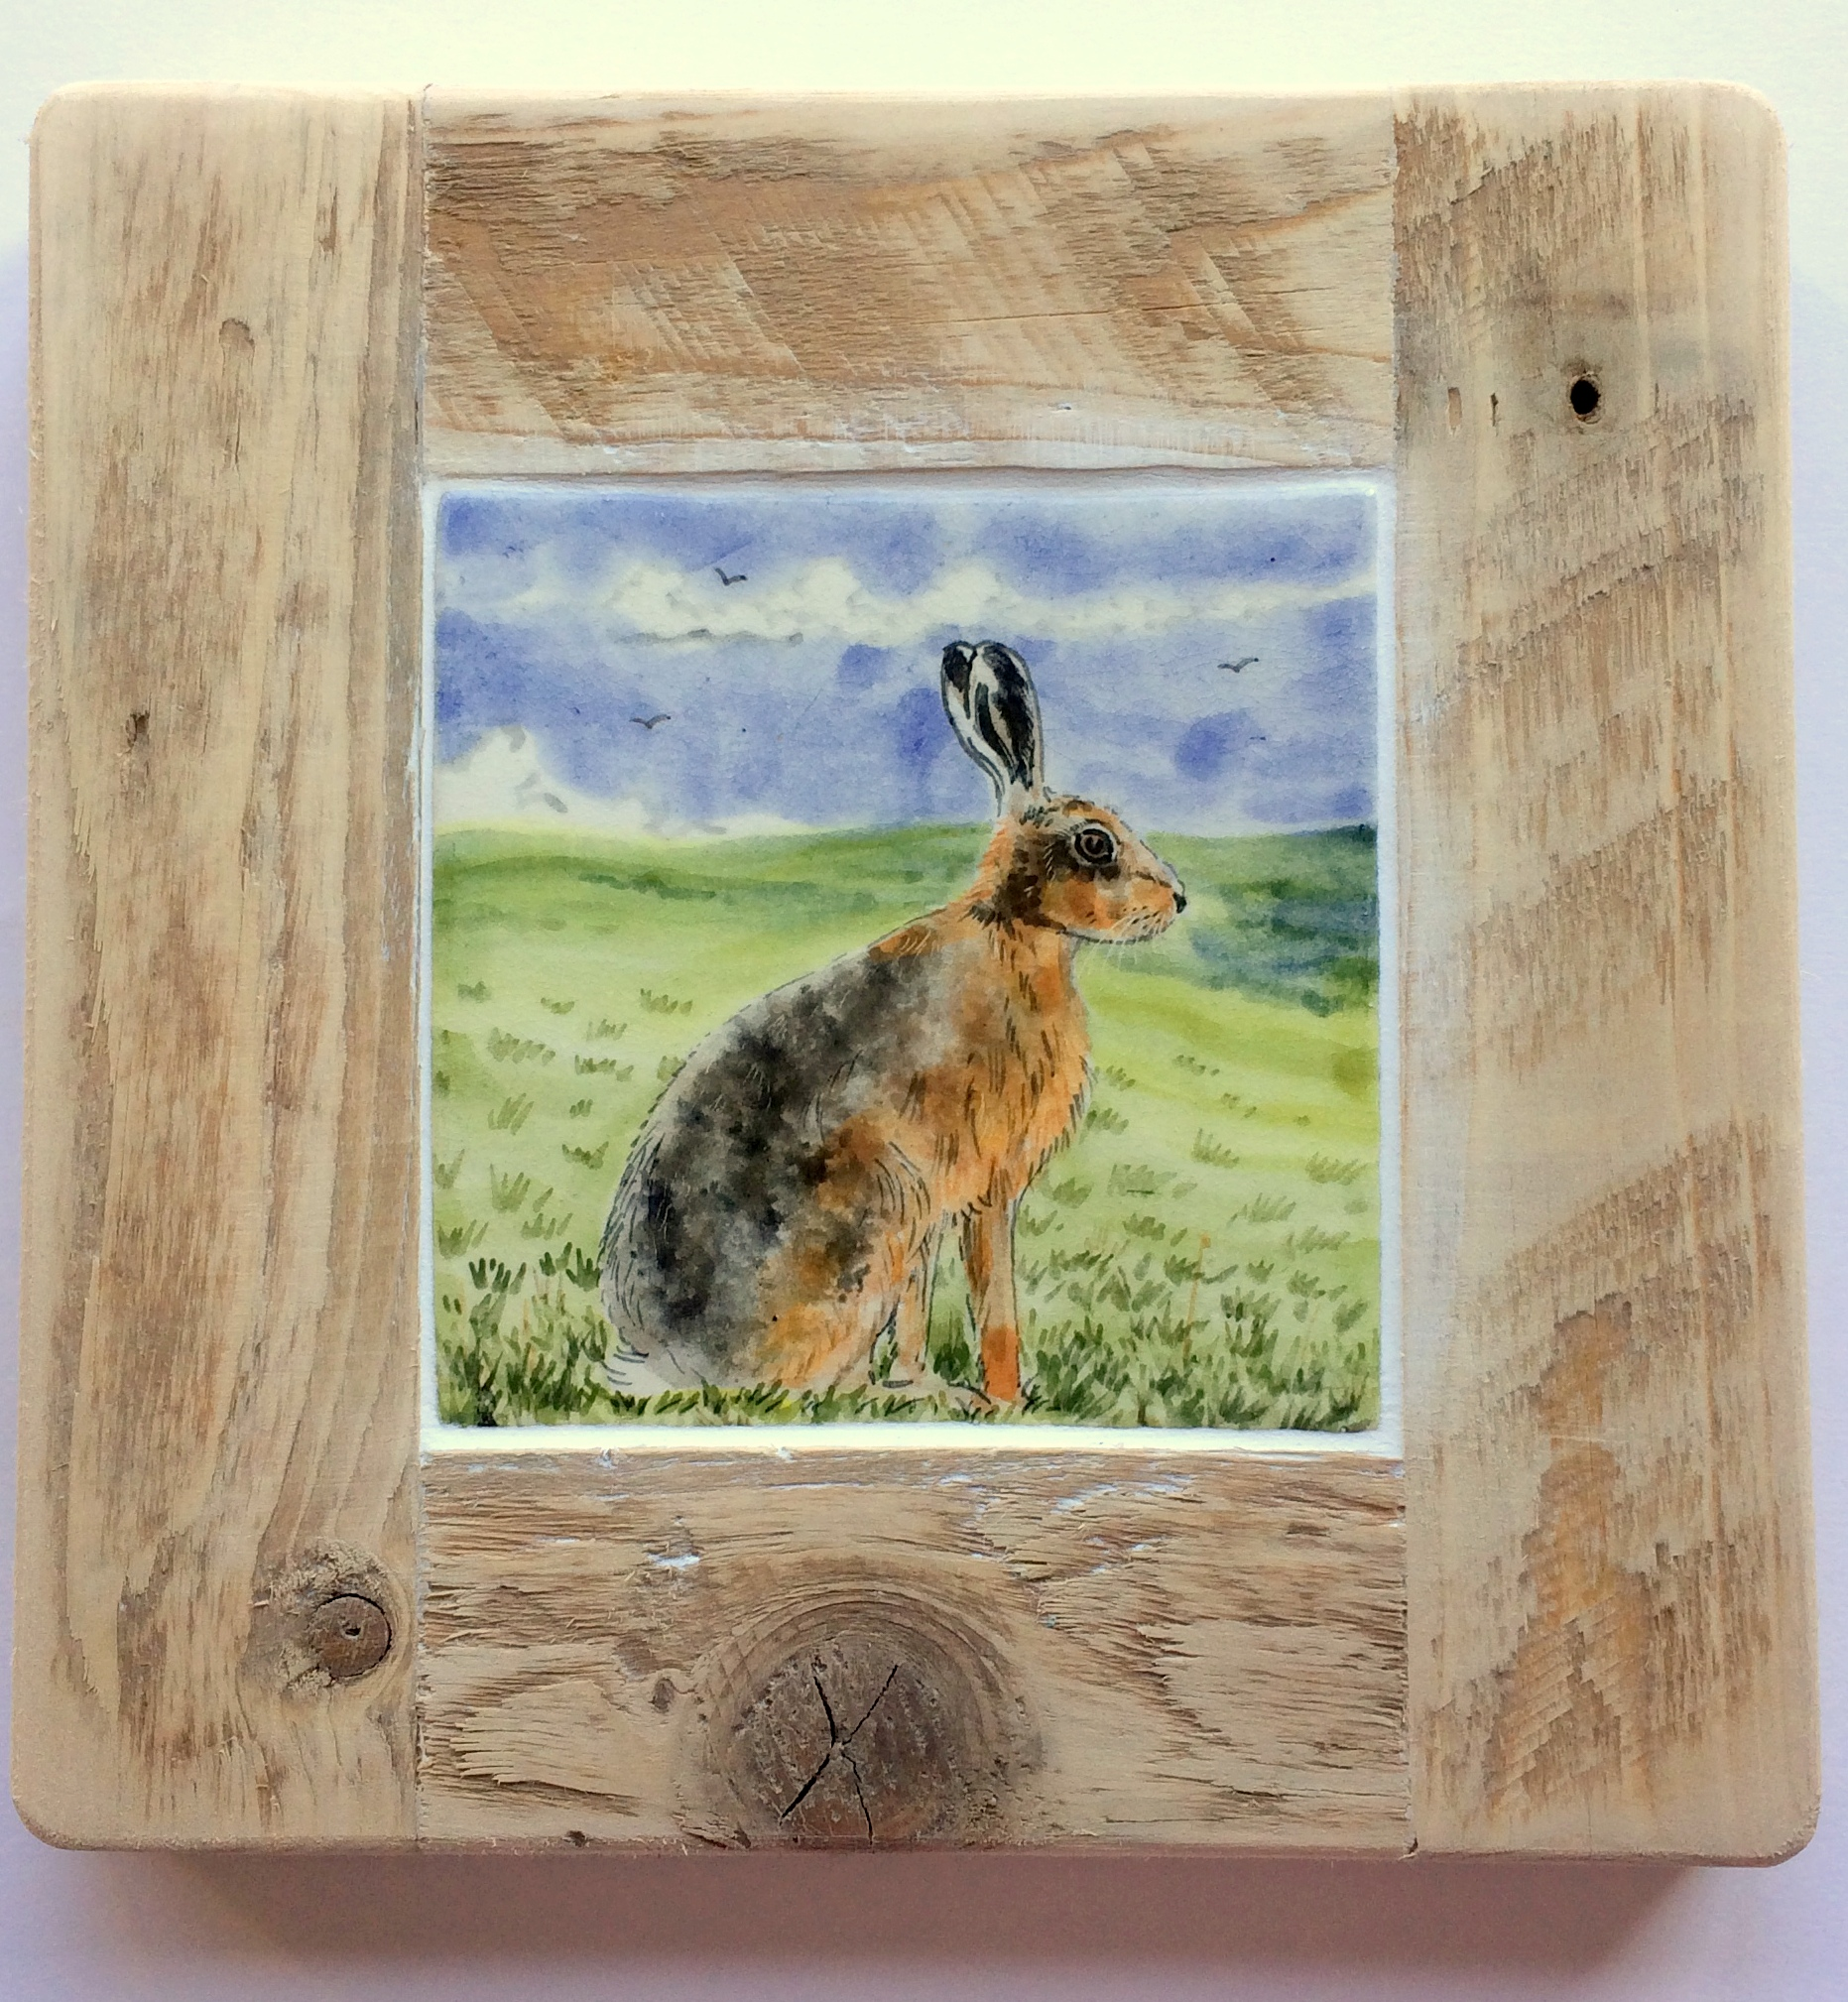 David Salsbury Hare tile